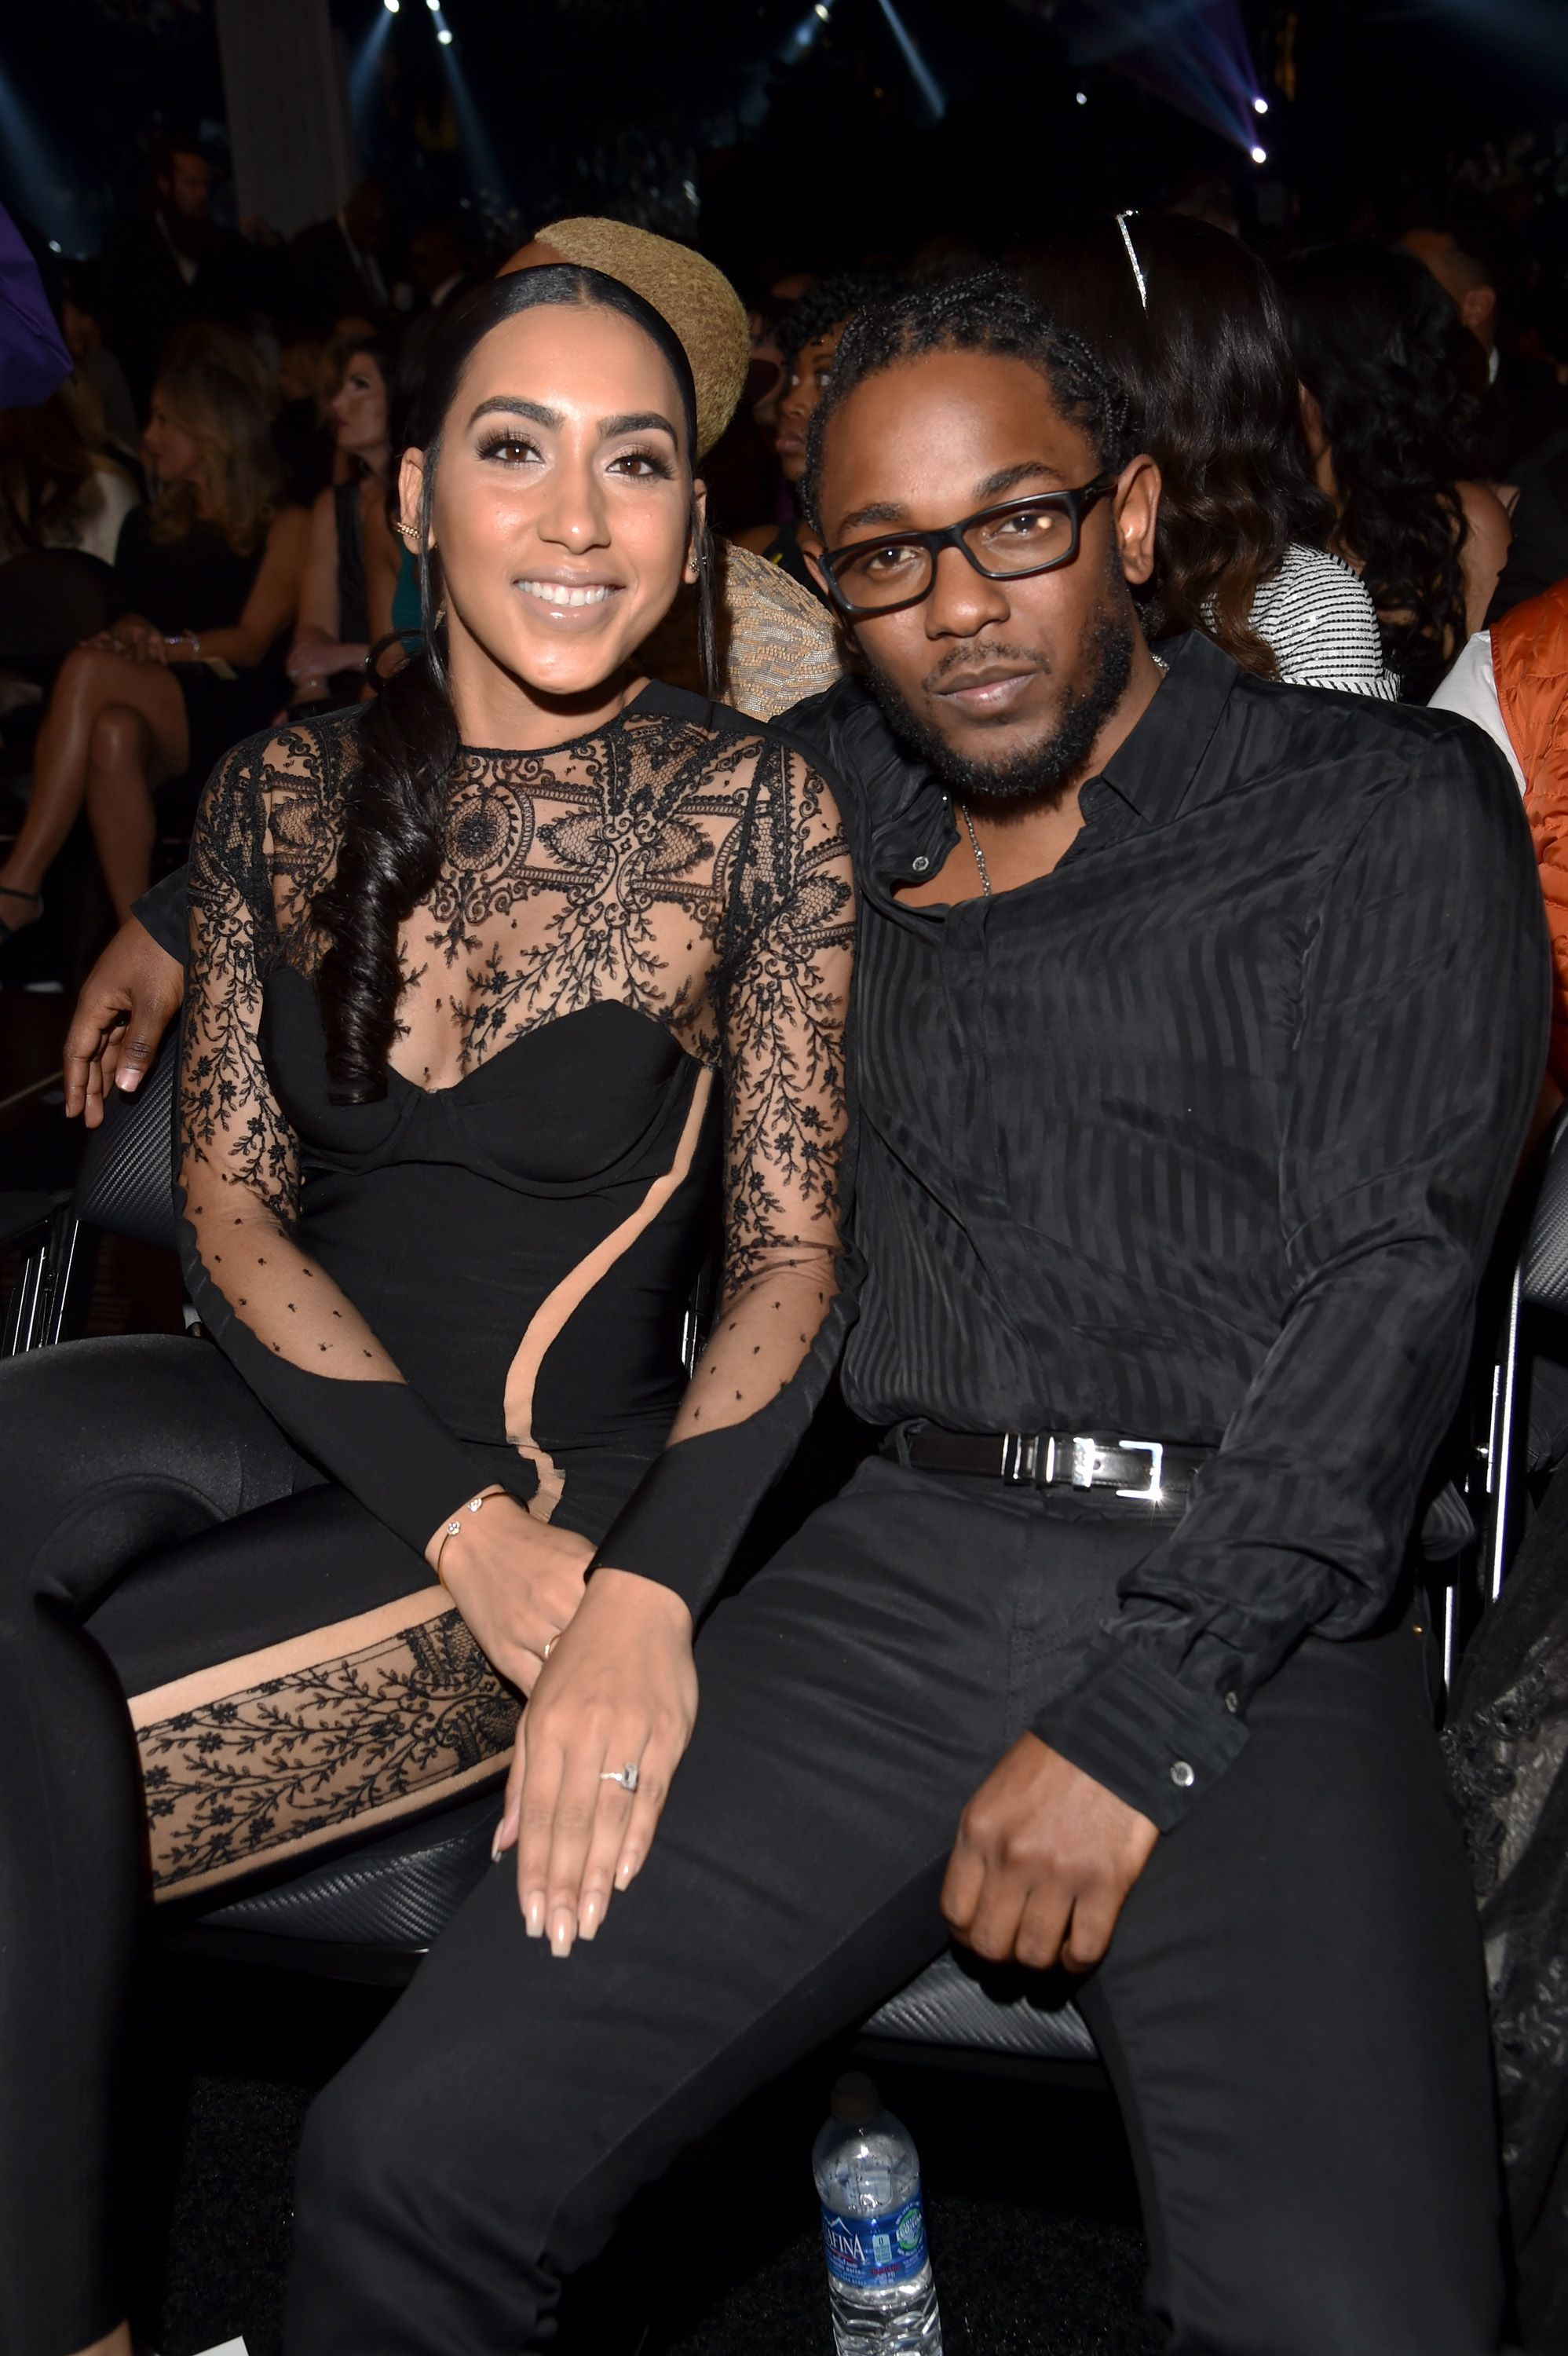 Kendrick Lamar and Whitney Alford attend the 58th Grammy Awards at Staples Center on February 15, 2016 in Los Angeles, California.   Photo: Getty Images